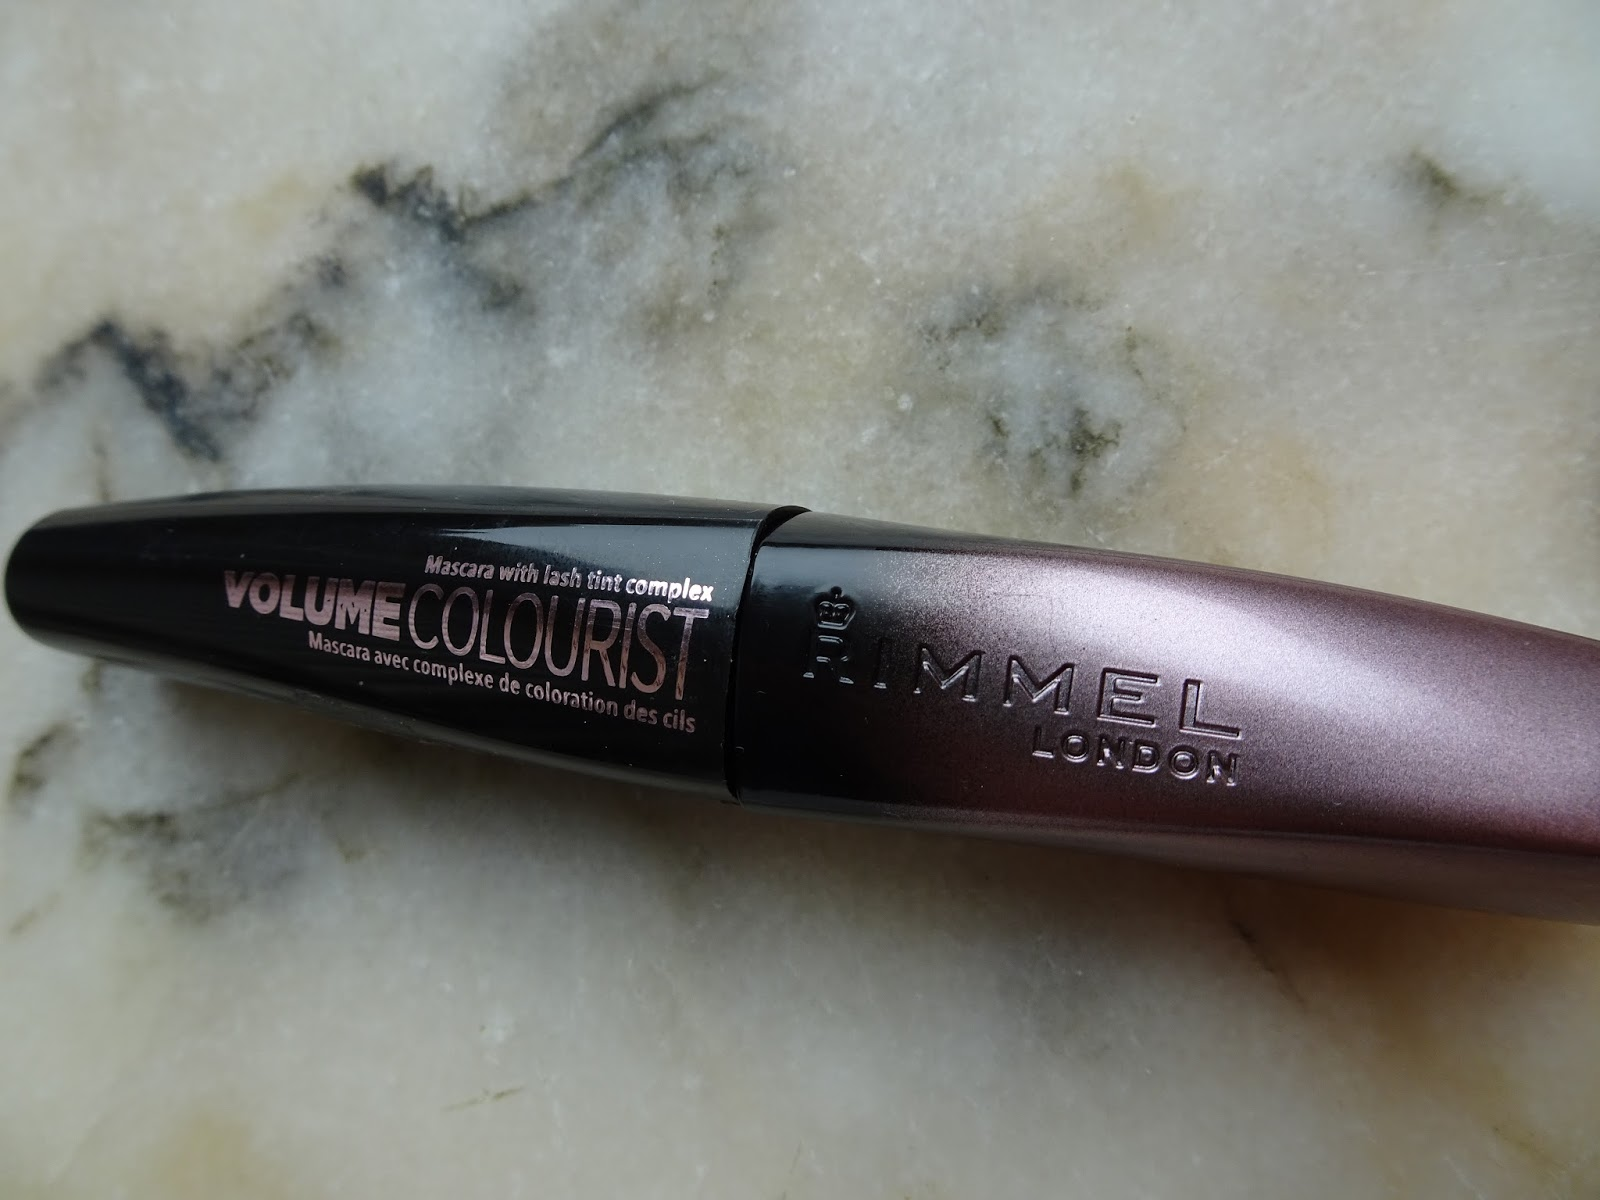 Rimmel Volumist colourist